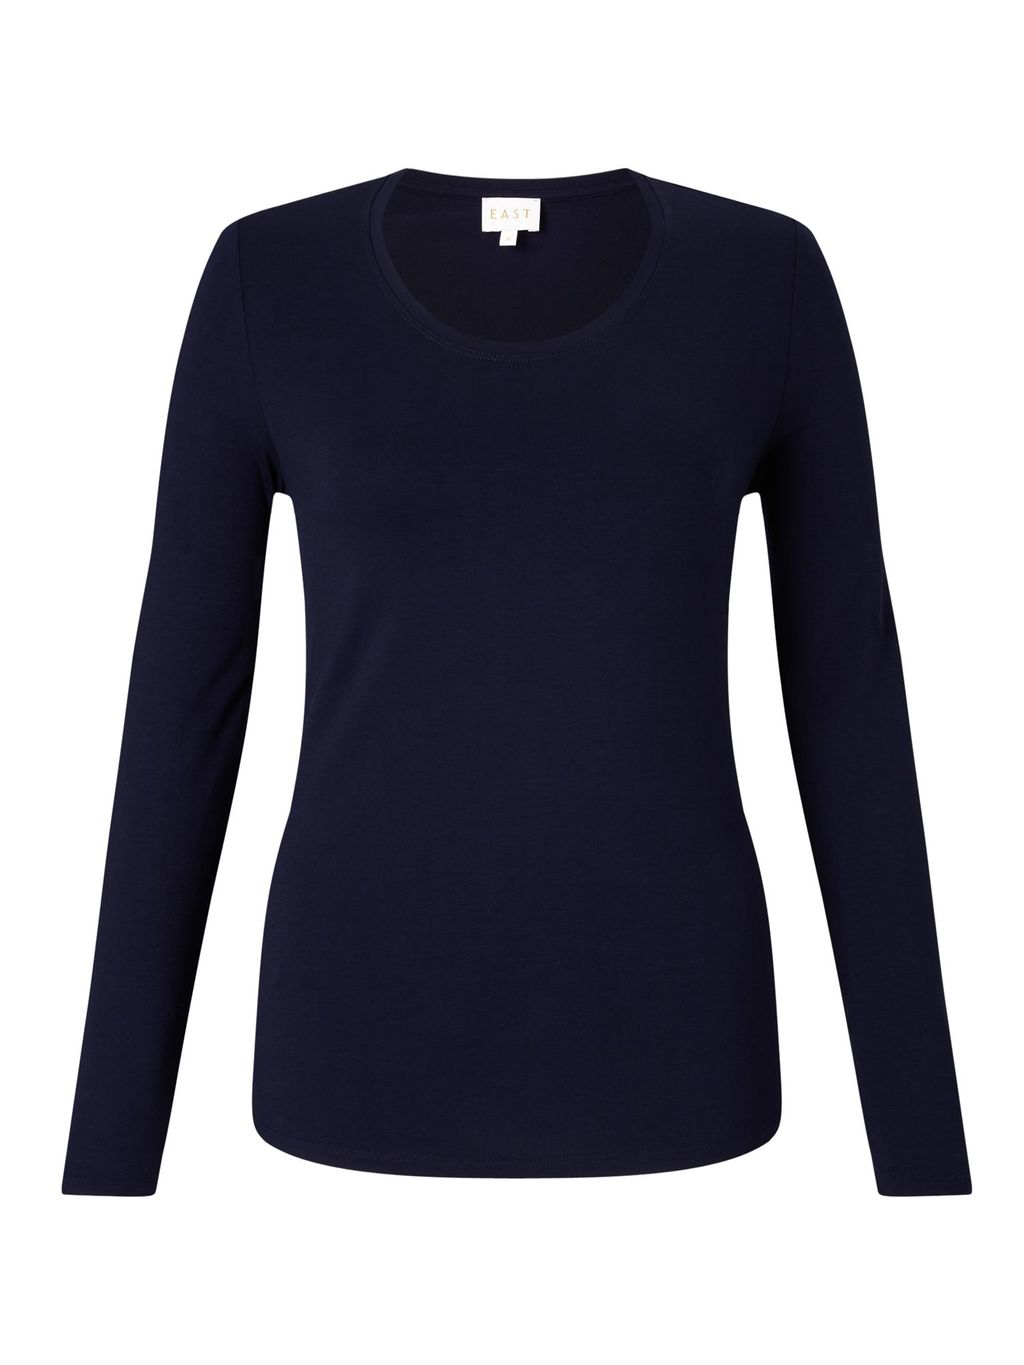 Long Sleeve Jersey Top, Blue - pattern: plain; predominant colour: navy; occasions: casual; length: standard; style: top; fibres: viscose/rayon - stretch; fit: body skimming; neckline: crew; sleeve length: long sleeve; sleeve style: standard; pattern type: fabric; texture group: jersey - stretchy/drapey; wardrobe: basic; season: a/w 2016